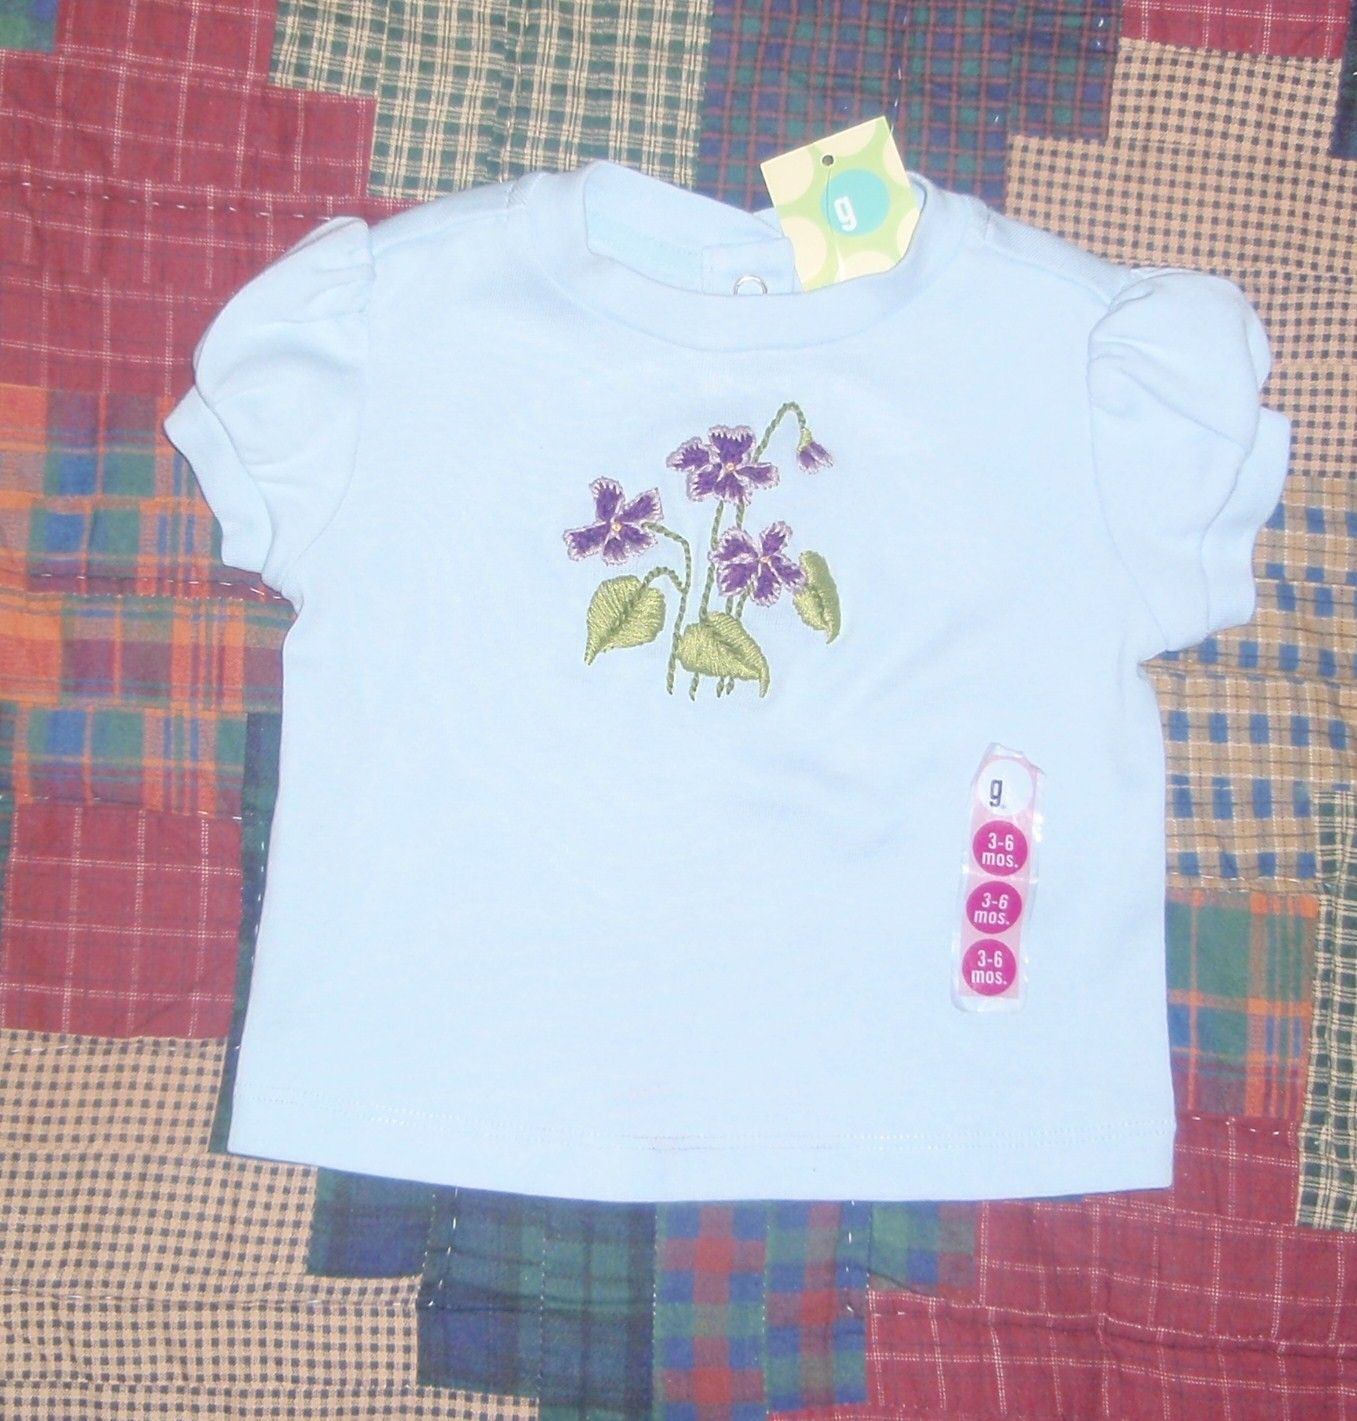 hand-embroidered top - size 3-6 month, violets, gymboree shirt. $10.00, via Etsy.